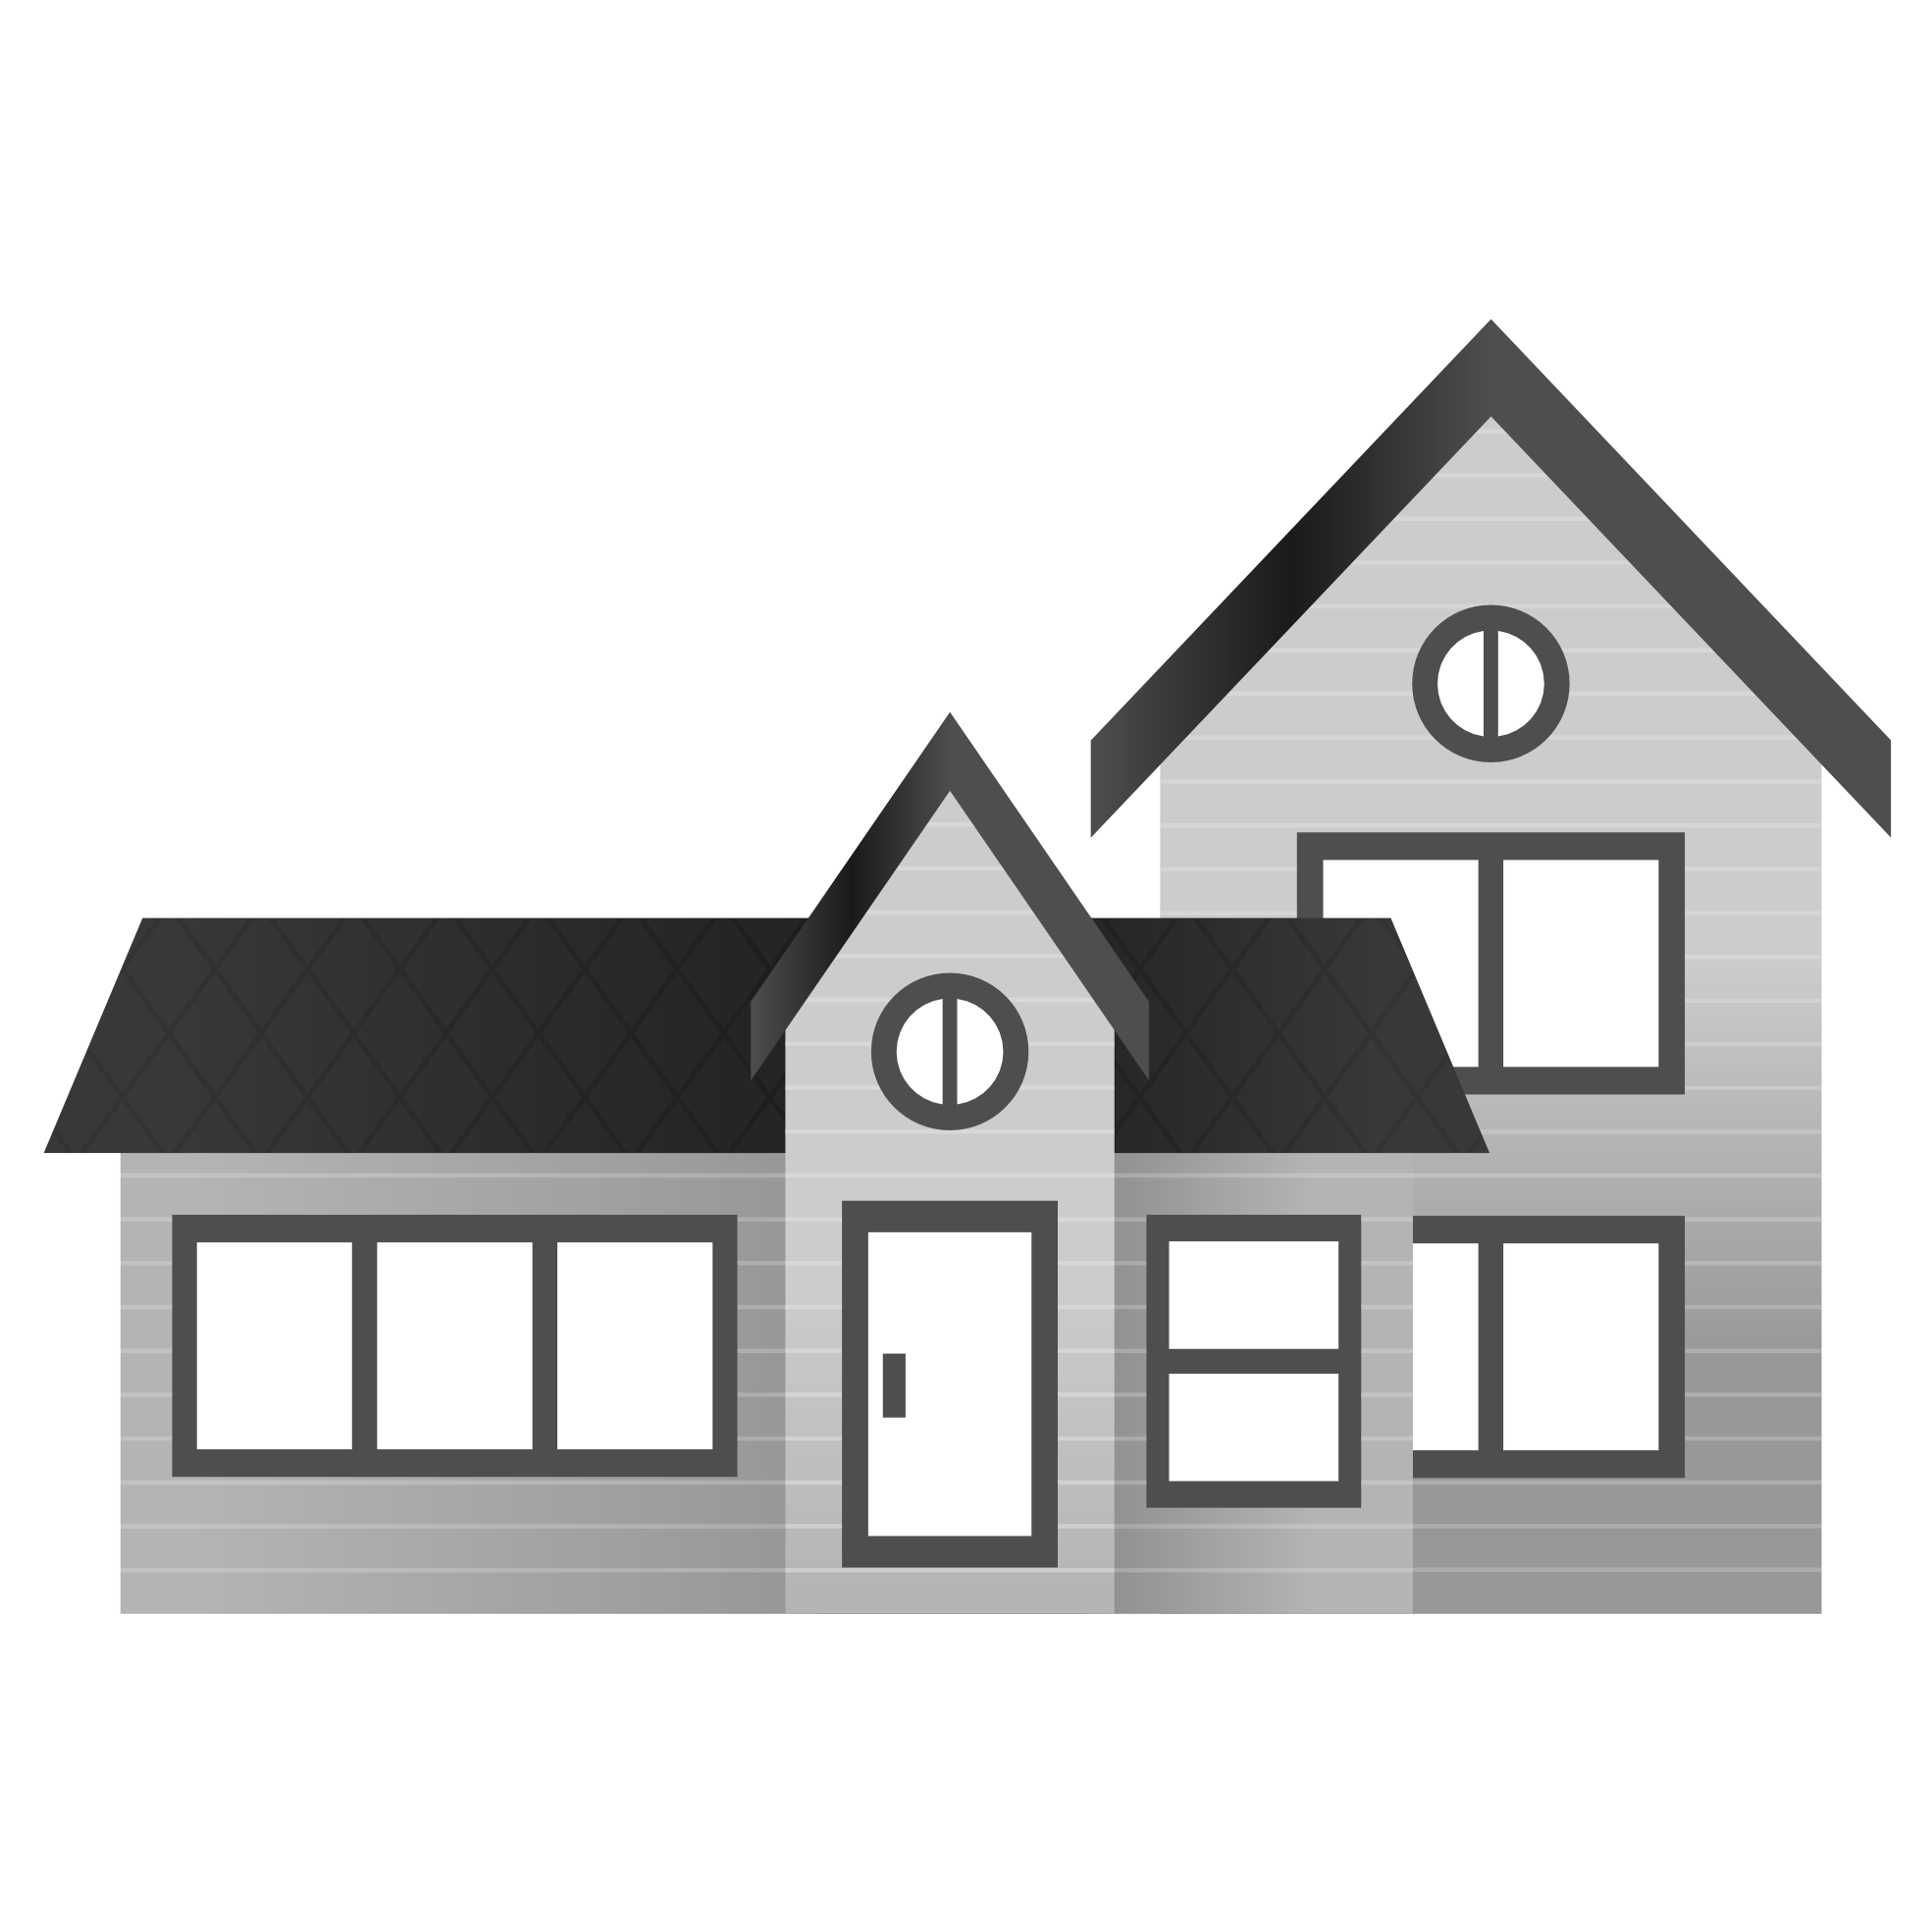 House vector png. Designs free icons and